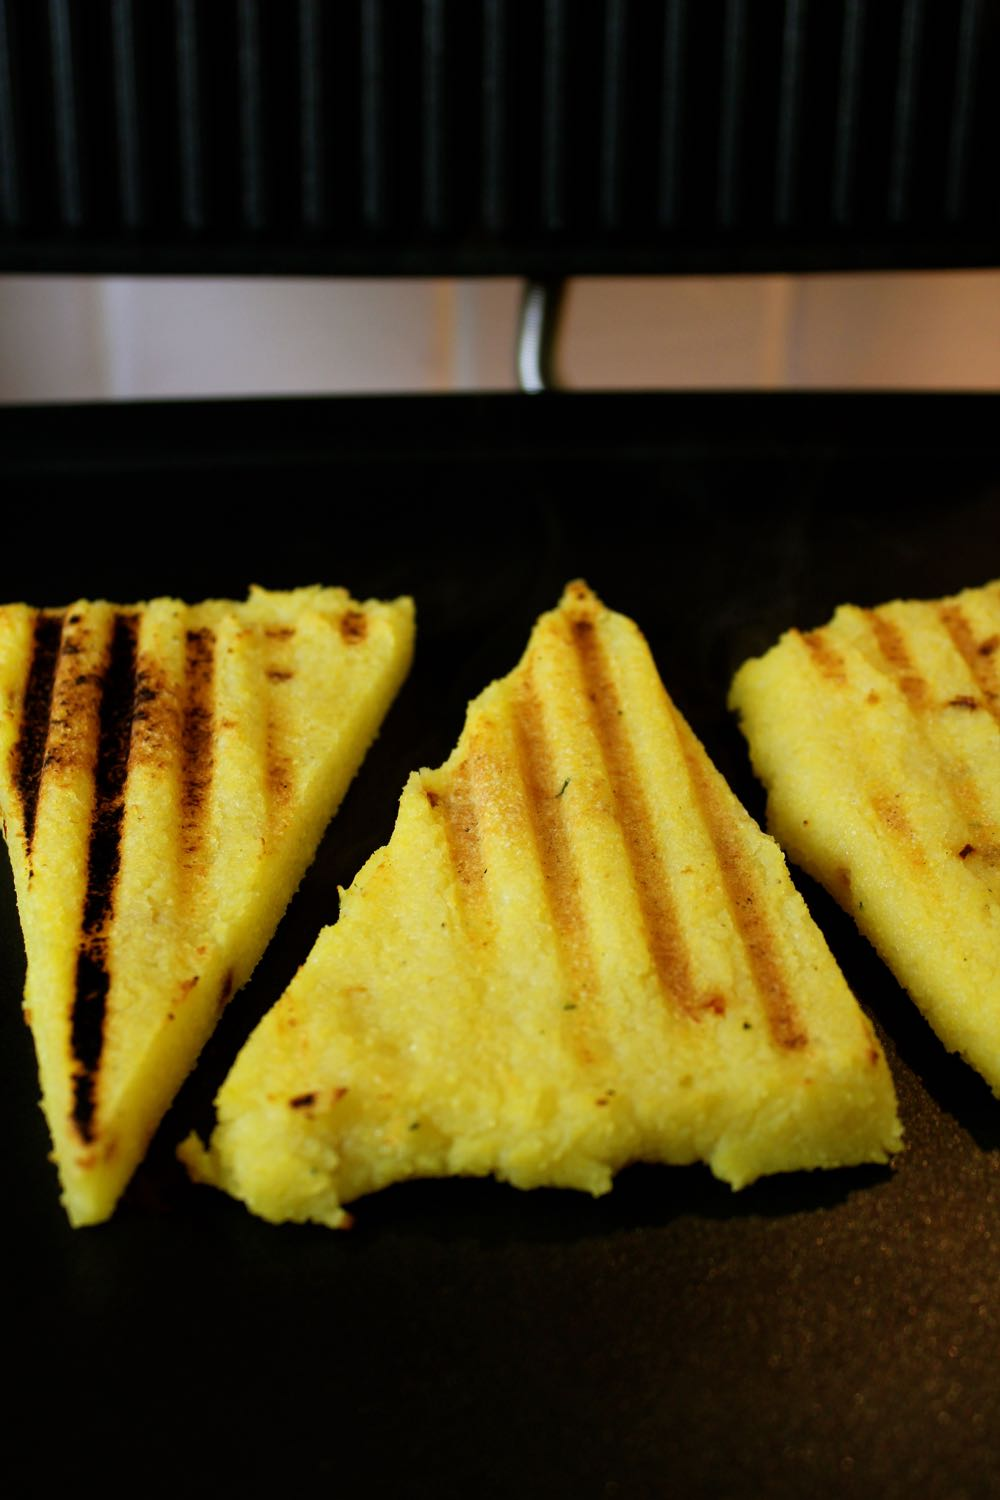 Three pieces of Griddled Polenta Bruschetta on the grill